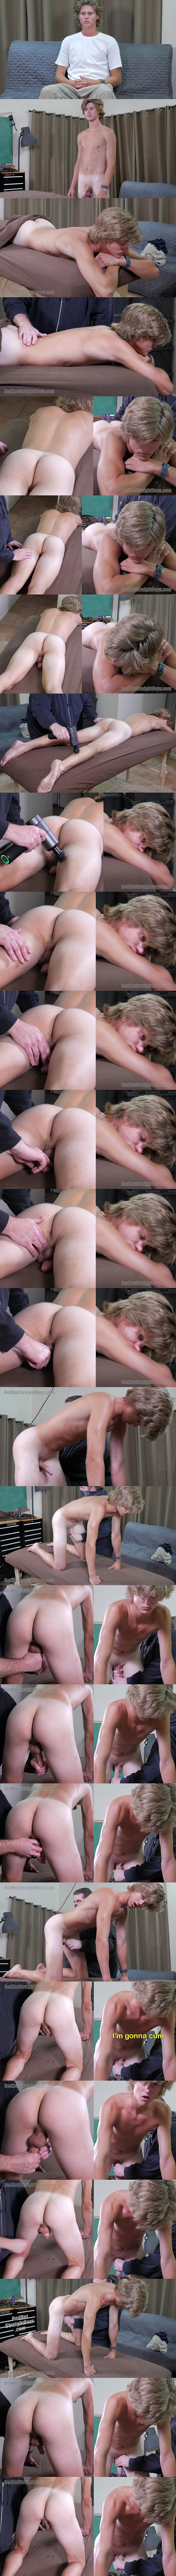 Cute blonde straight lad Ike Godsey gets fondled, massaged and jerked off by a guy for the first time on camera in First Gay Experience at Redhotstraightboys 01